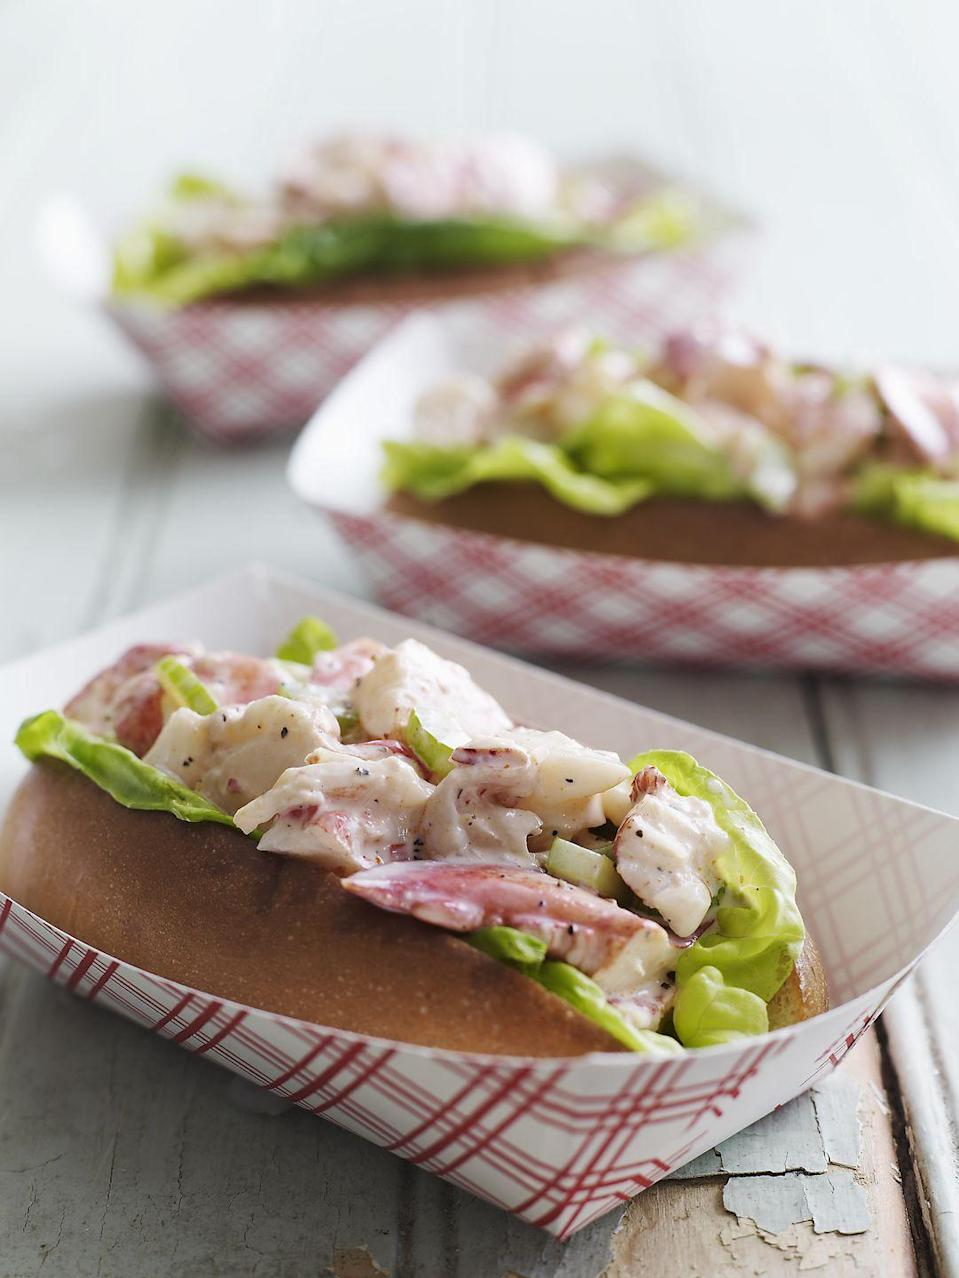 """<p>Lobster rolls may be pricey, but they're definitely worth the splurge at least once this summer. </p><p><strong>RELATED:</strong> <a href=""""https://www.countryliving.com/life/g1718/fun-things-to-do-in-the-summer/"""" rel=""""nofollow noopener"""" target=""""_blank"""" data-ylk=""""slk:50 Ways to Have the Best Summer Ever"""" class=""""link rapid-noclick-resp"""">50 Ways to Have the Best Summer Ever</a></p>"""